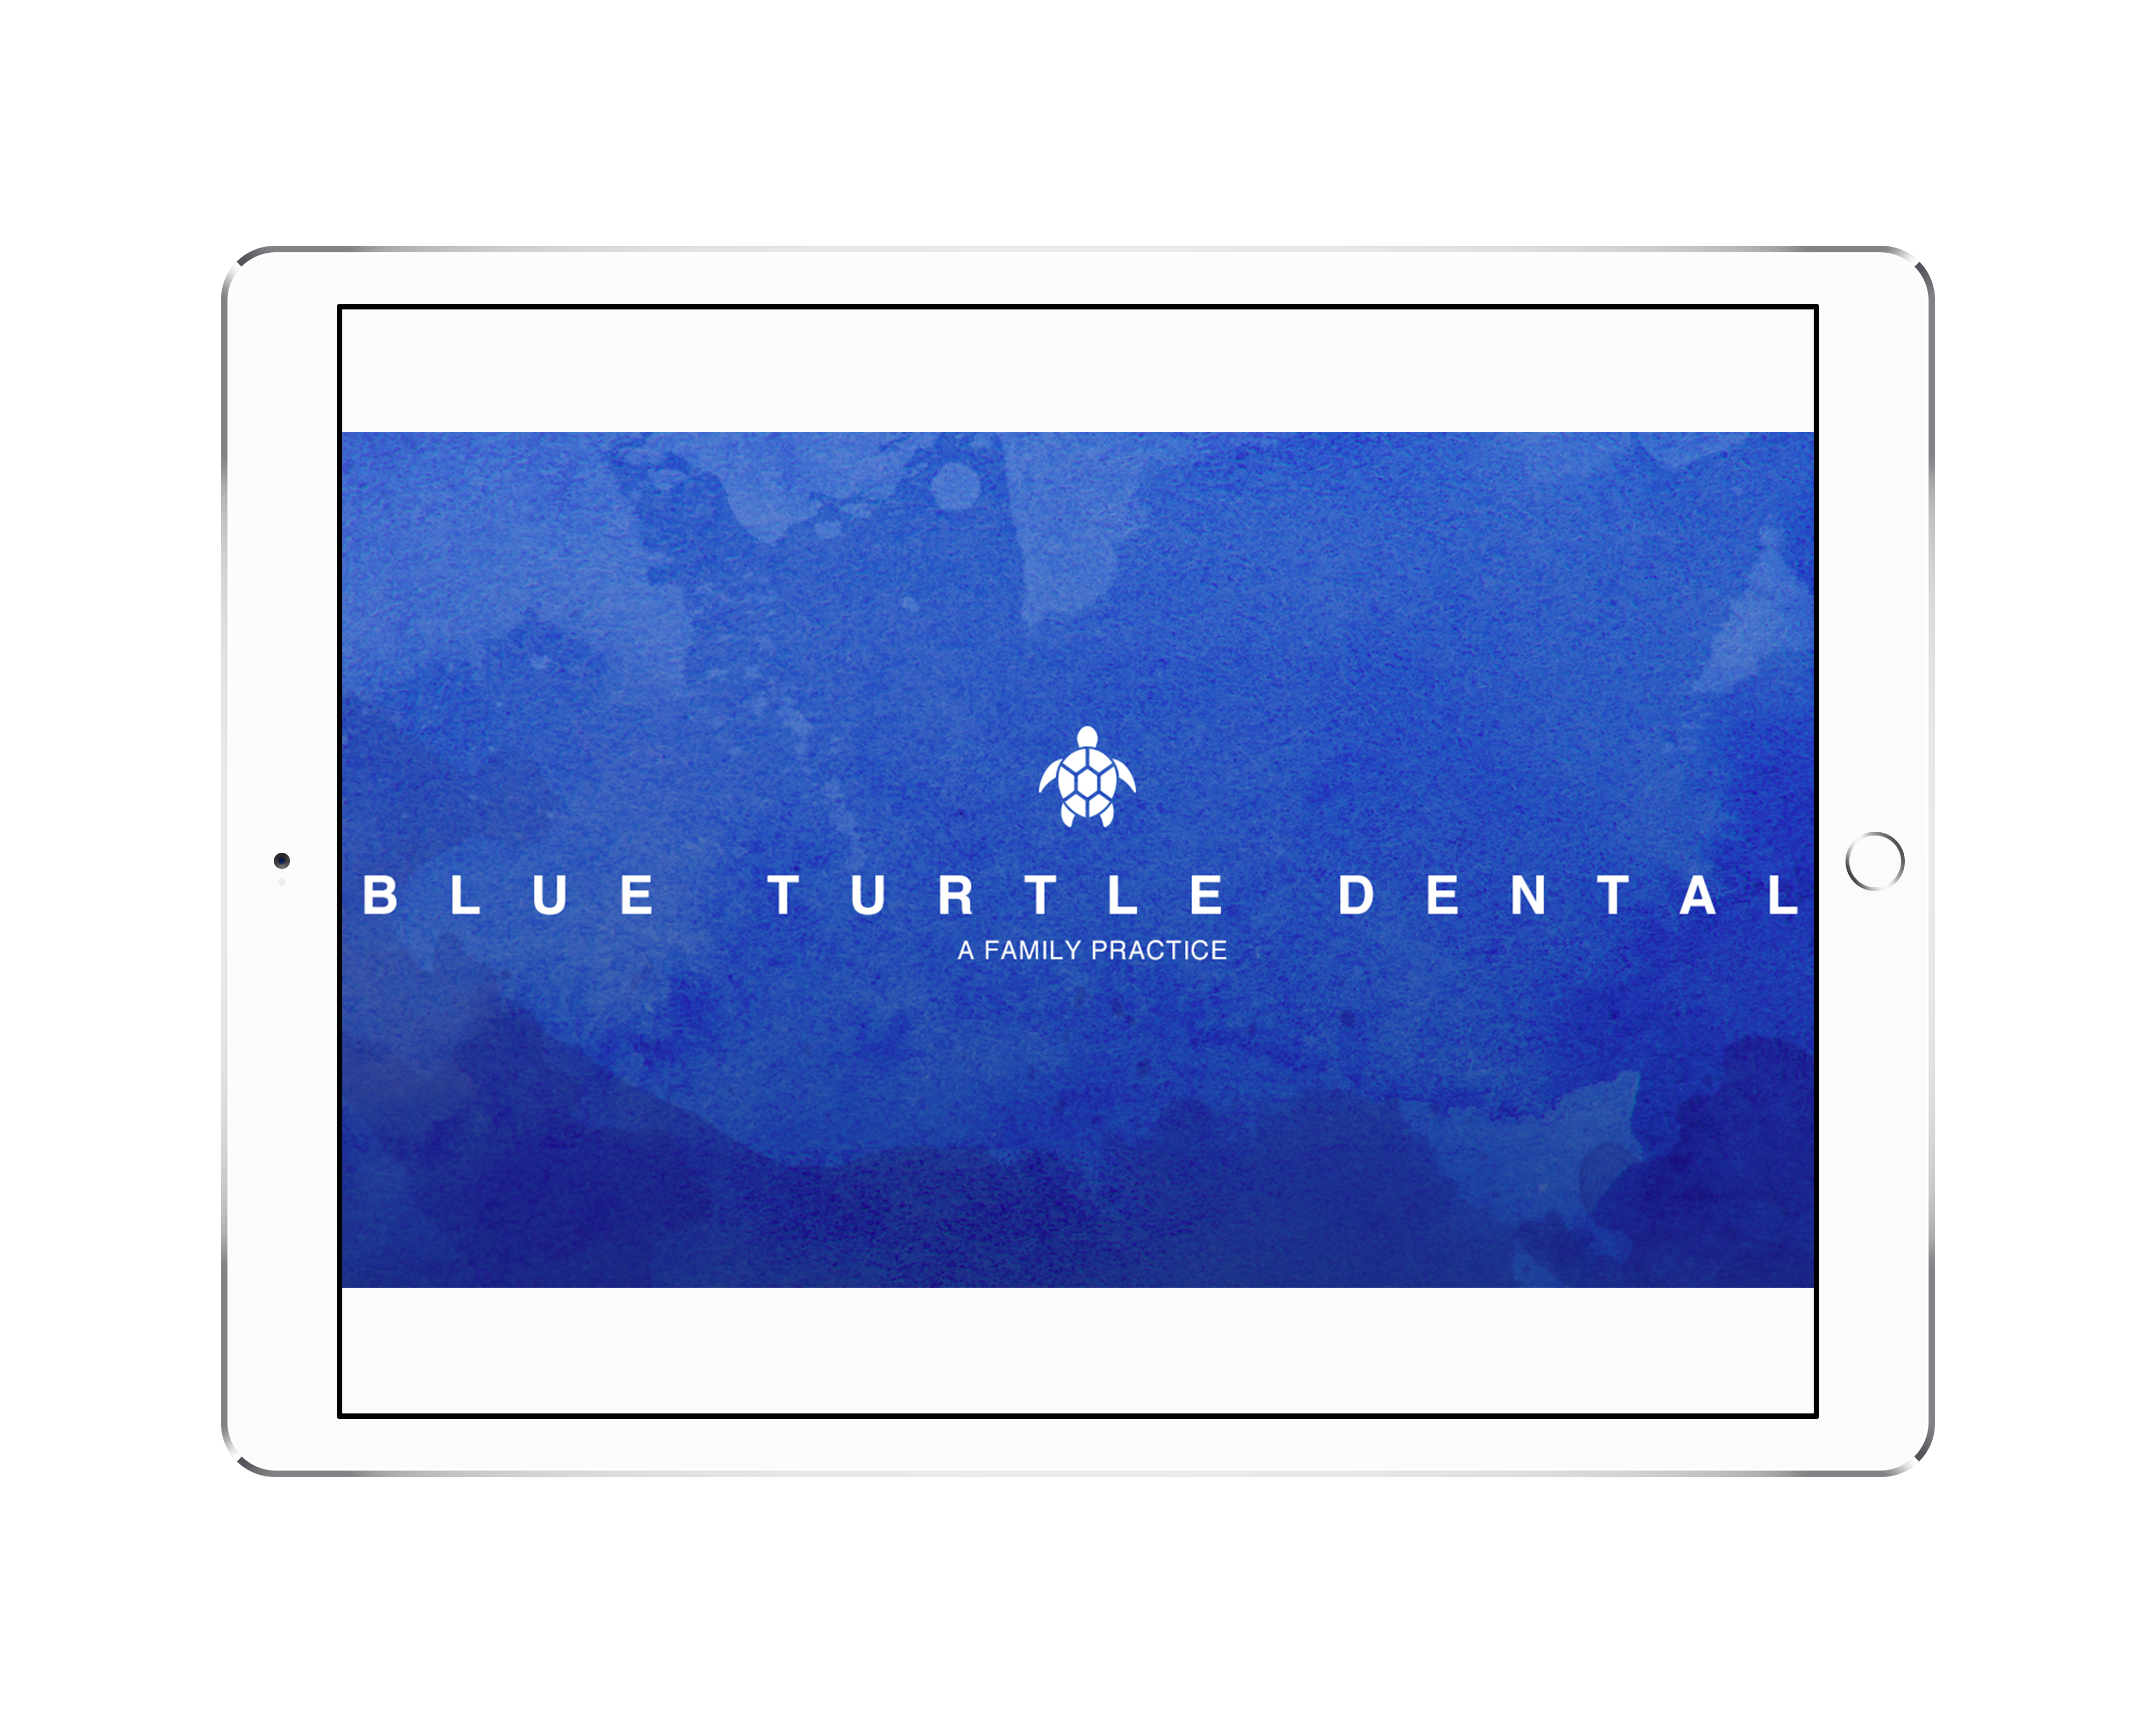 Brand Identity & Website Development for Blue Turtle Dental